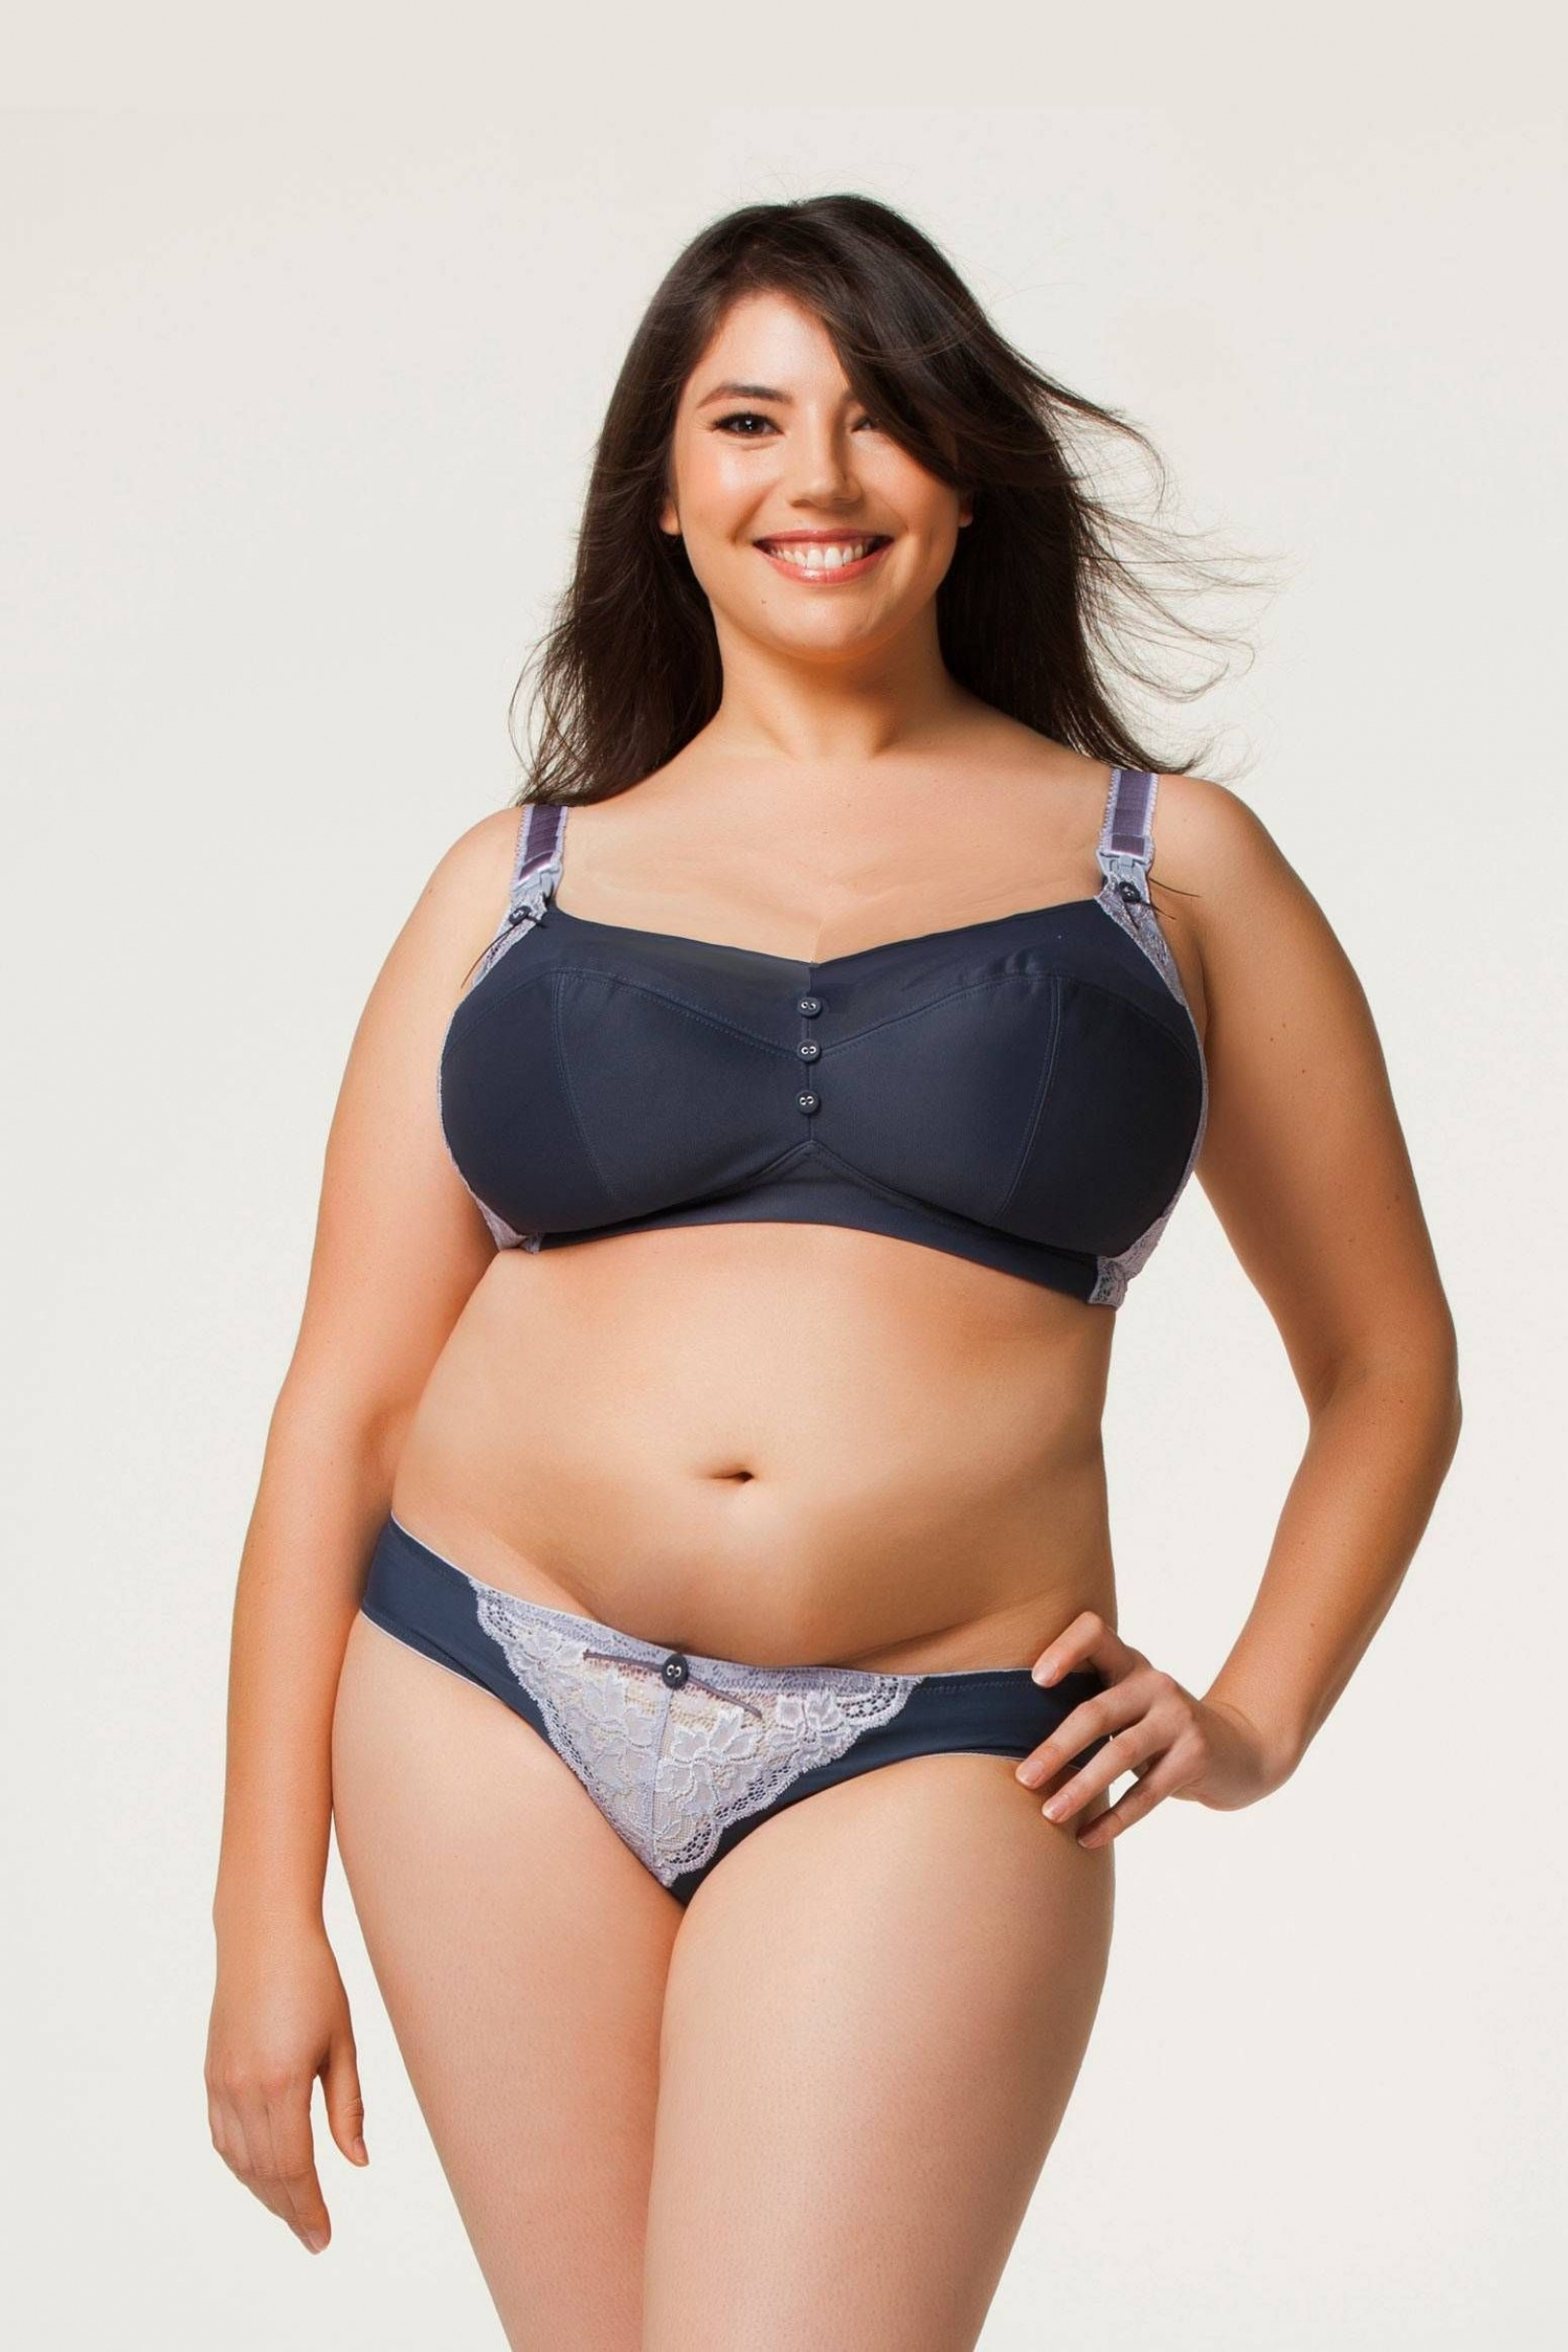 This means that plus-size women must often buy items based only on their own measurements and how it looks on the model. Making it worse: Smaller models may be padded in order to fill out plus.